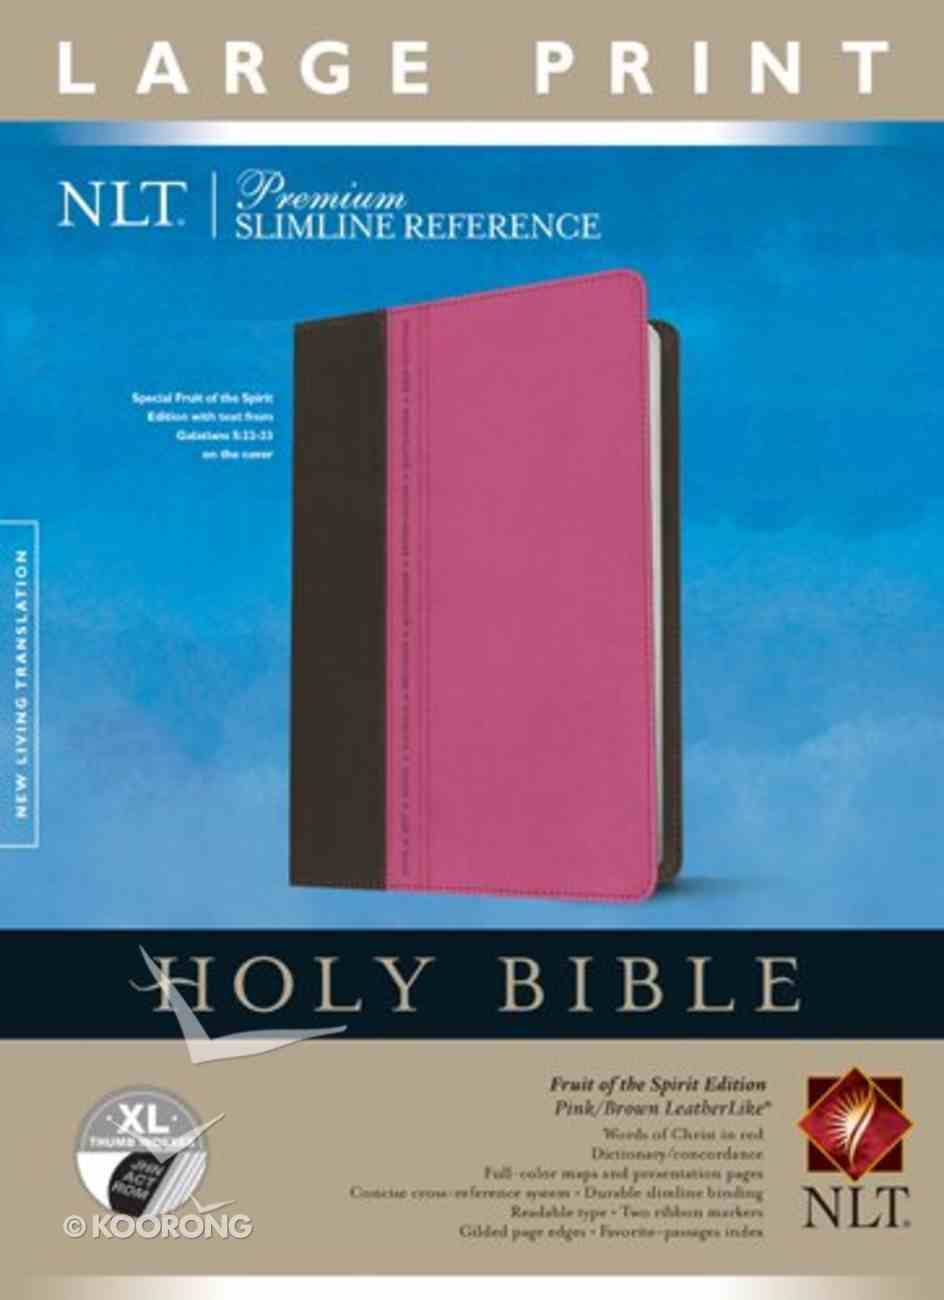 NLT Premium Slimline Reference Bible Large Print Pink/Brown Indexed (Red Letter Edition) Imitation Leather